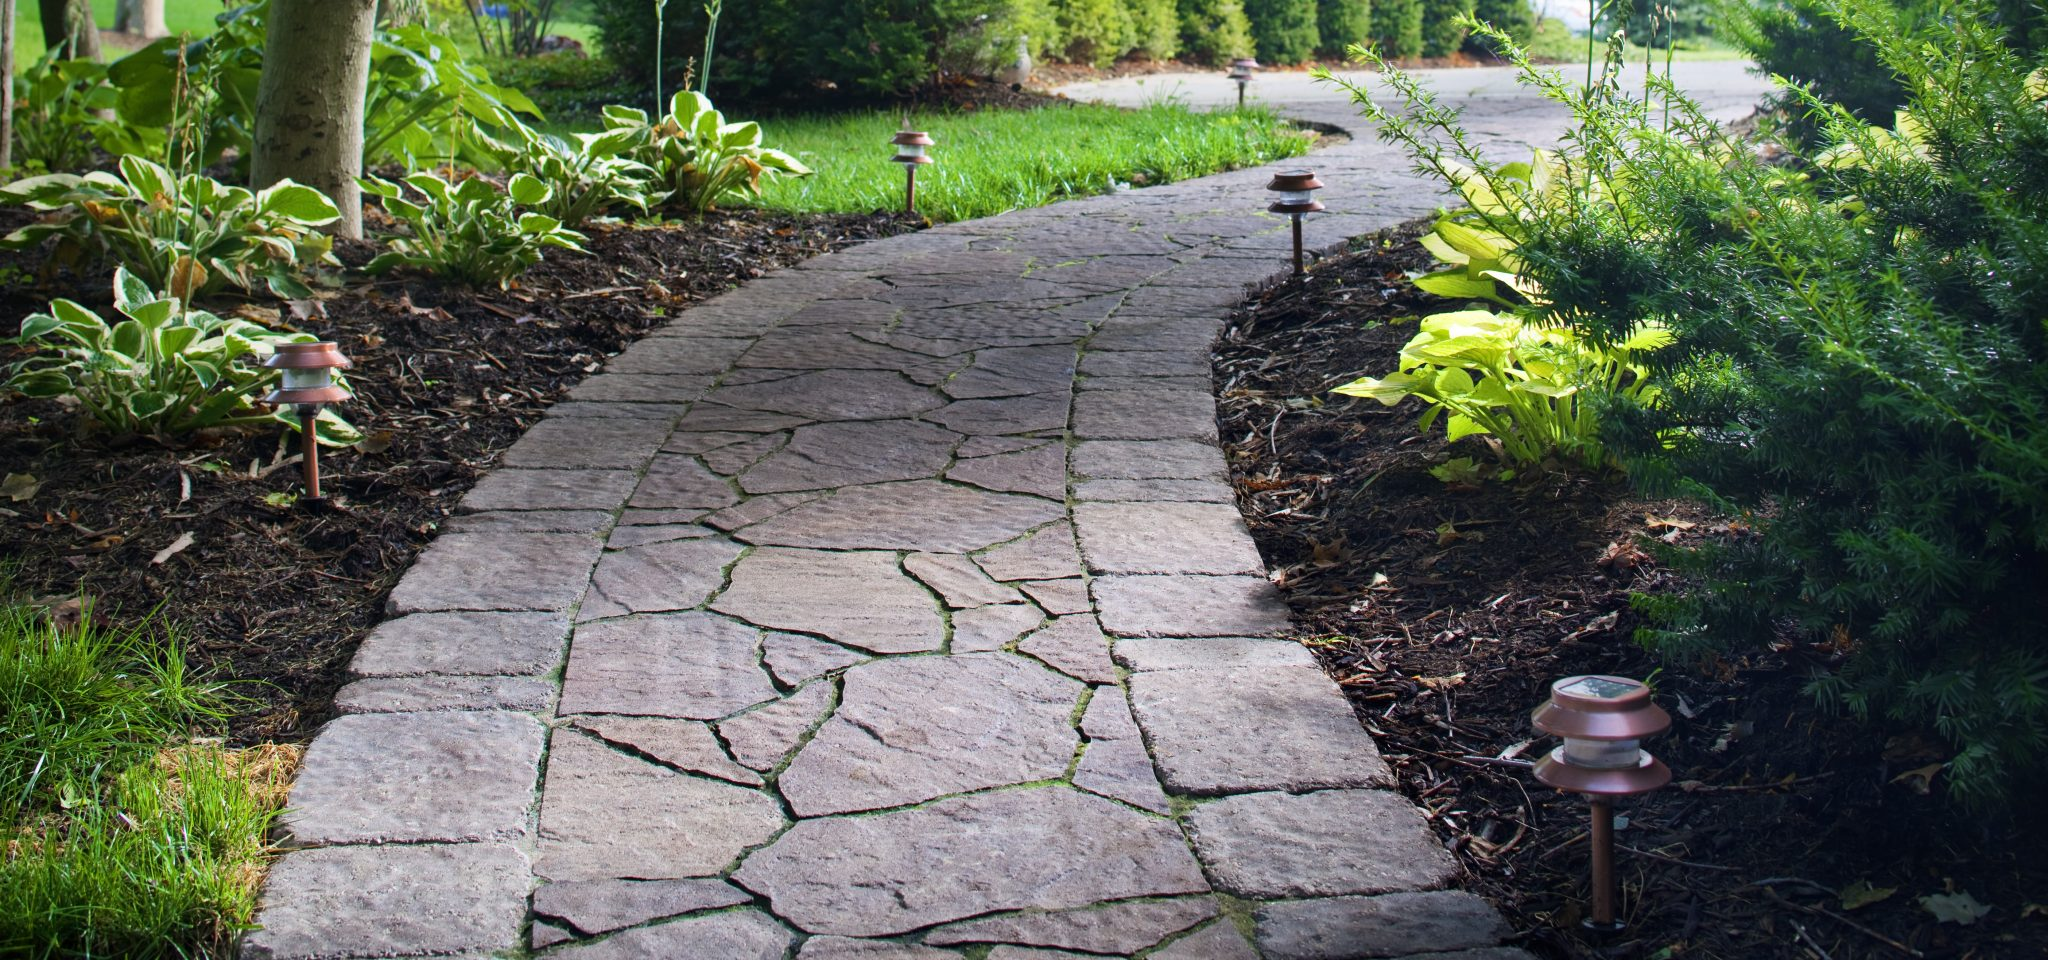 Paver walkway design ideas quotes - Garden pathway design ideas with some natural stones trails ...